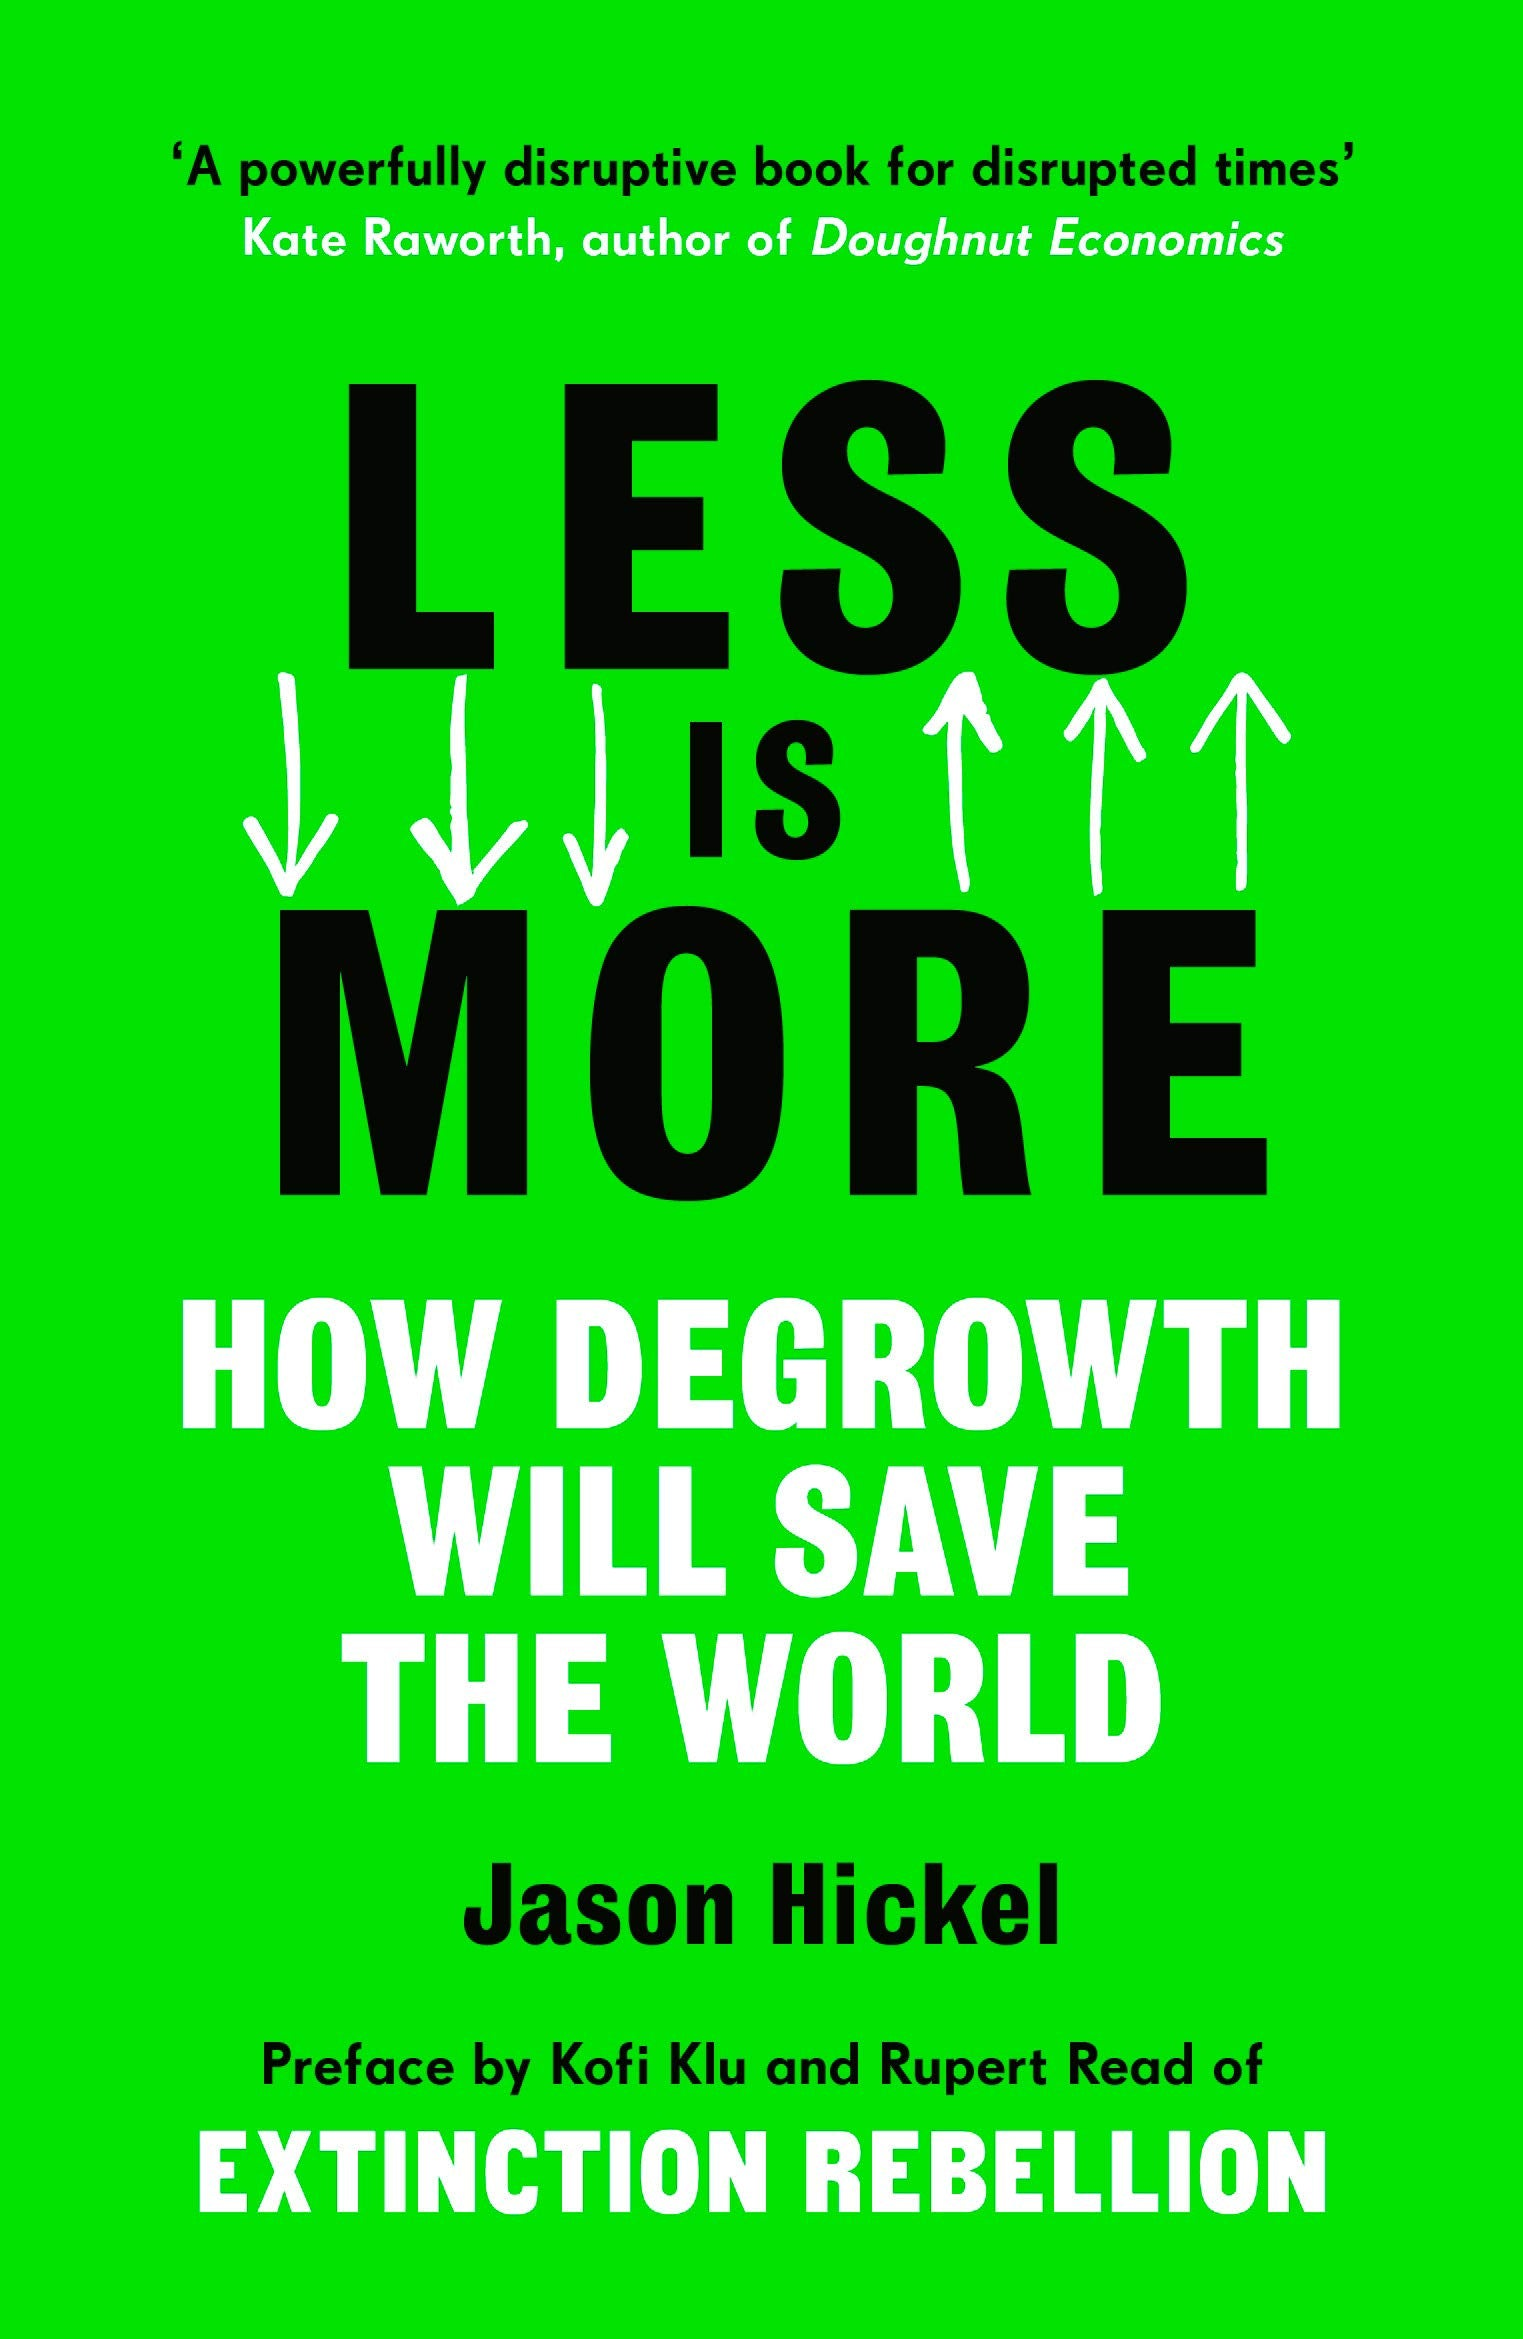 Jason Hickel: Less is More - How Degrowth will Save the World